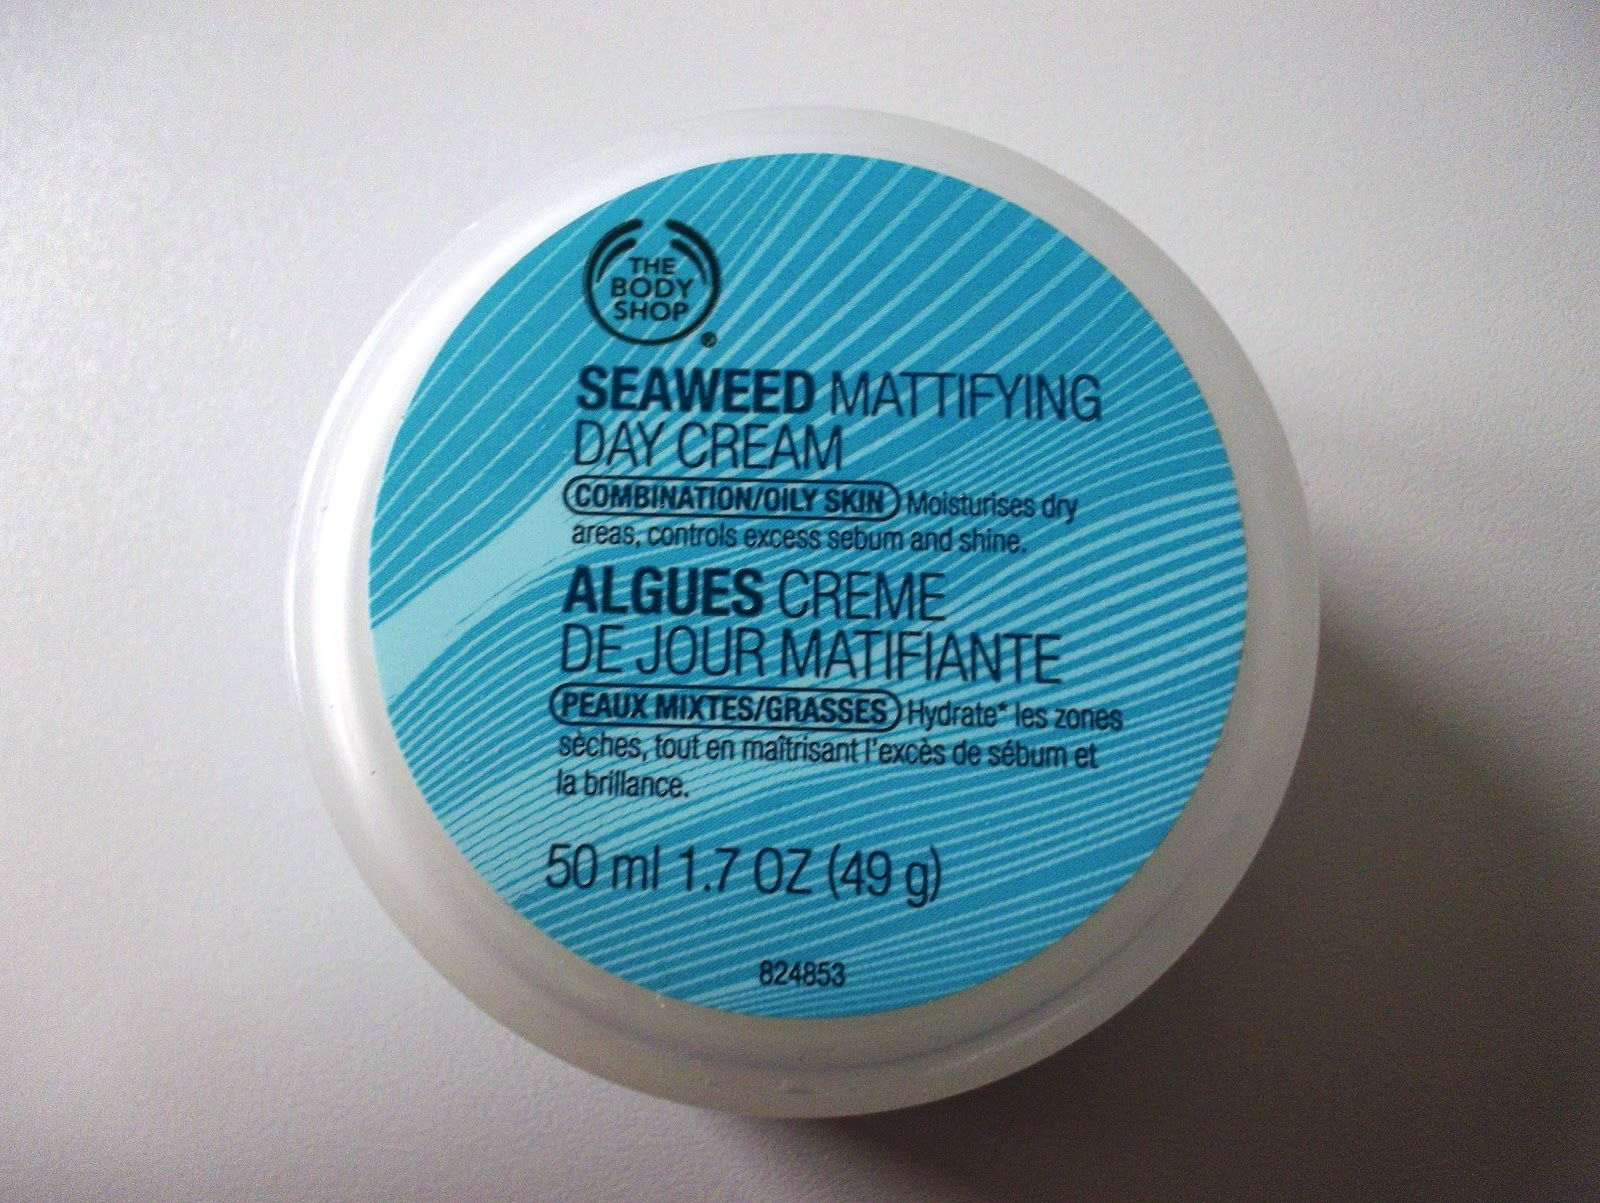 Body Shop Seaweed Day Cream